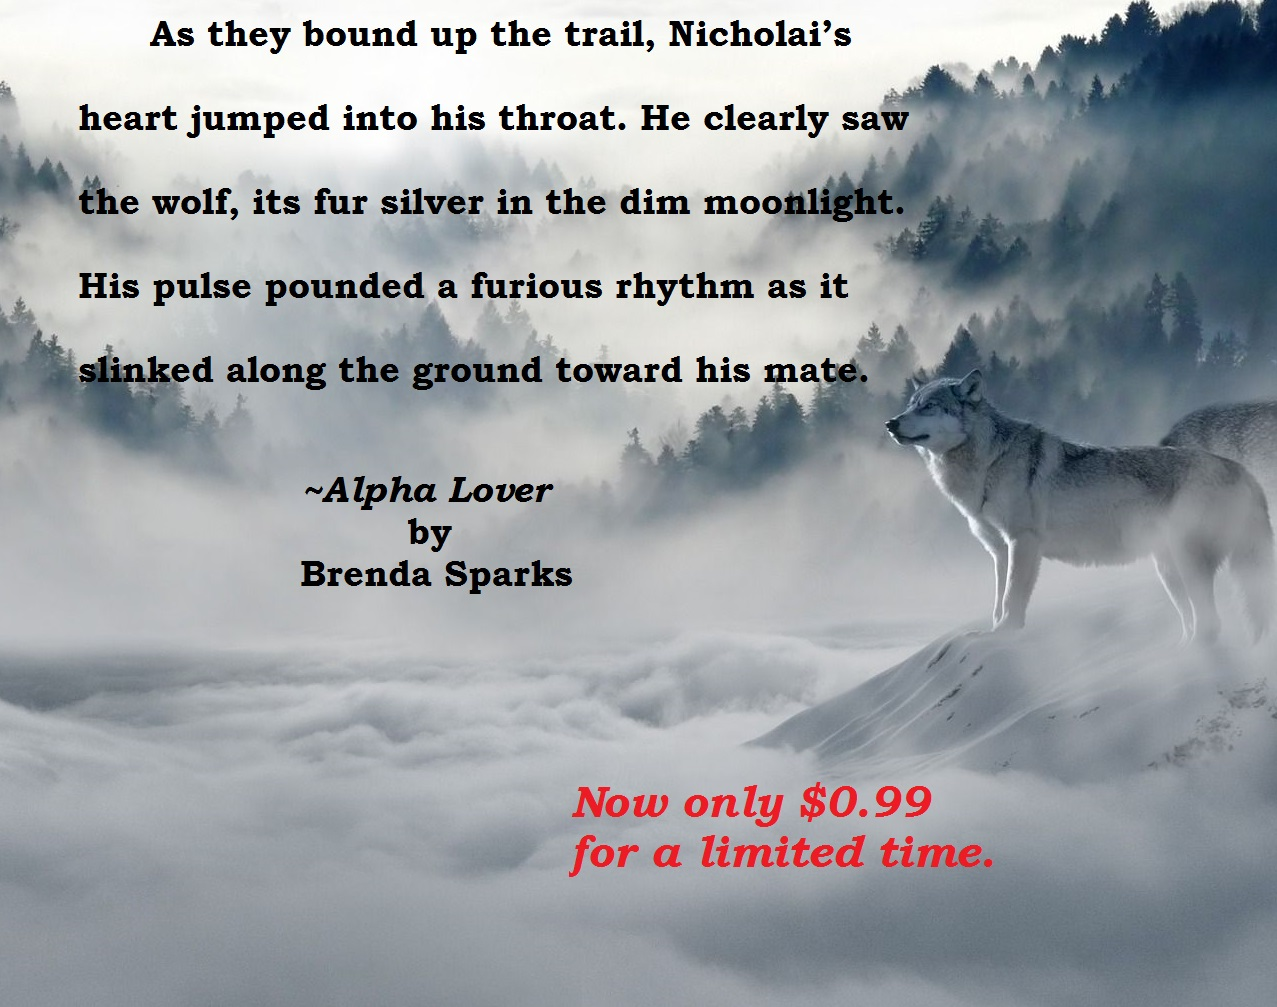 Want Alpha Lover For Only $099? Pick Up A Kindle Copy On Amazon Buy The  Book On Amazon Don't Want A Kindle Copy? Get A Copy At One Of These Other  Fine